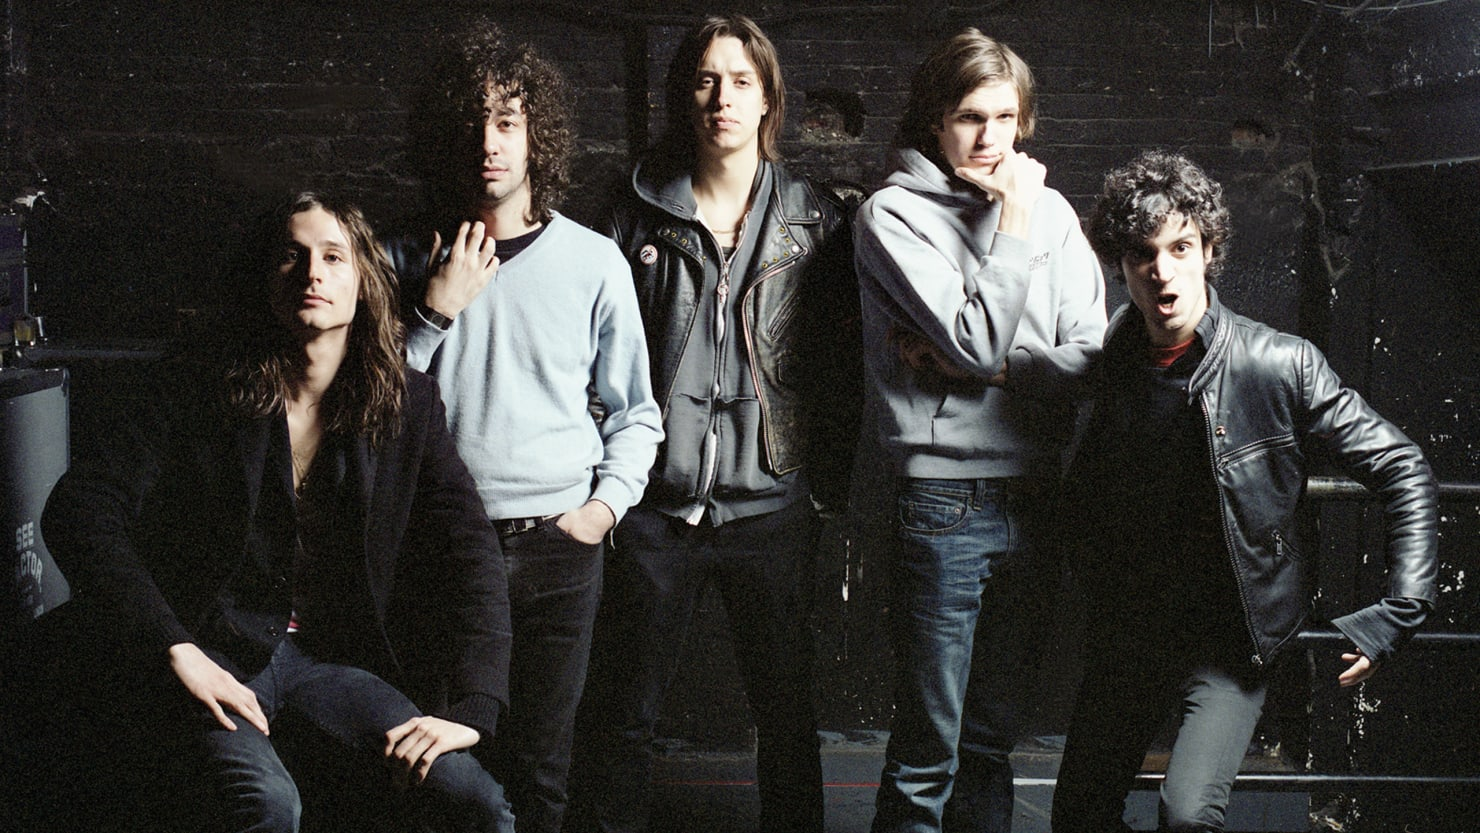 Rock And Roll Wallpaper Hd Is This It The Strokes Last Quiet Moment Before